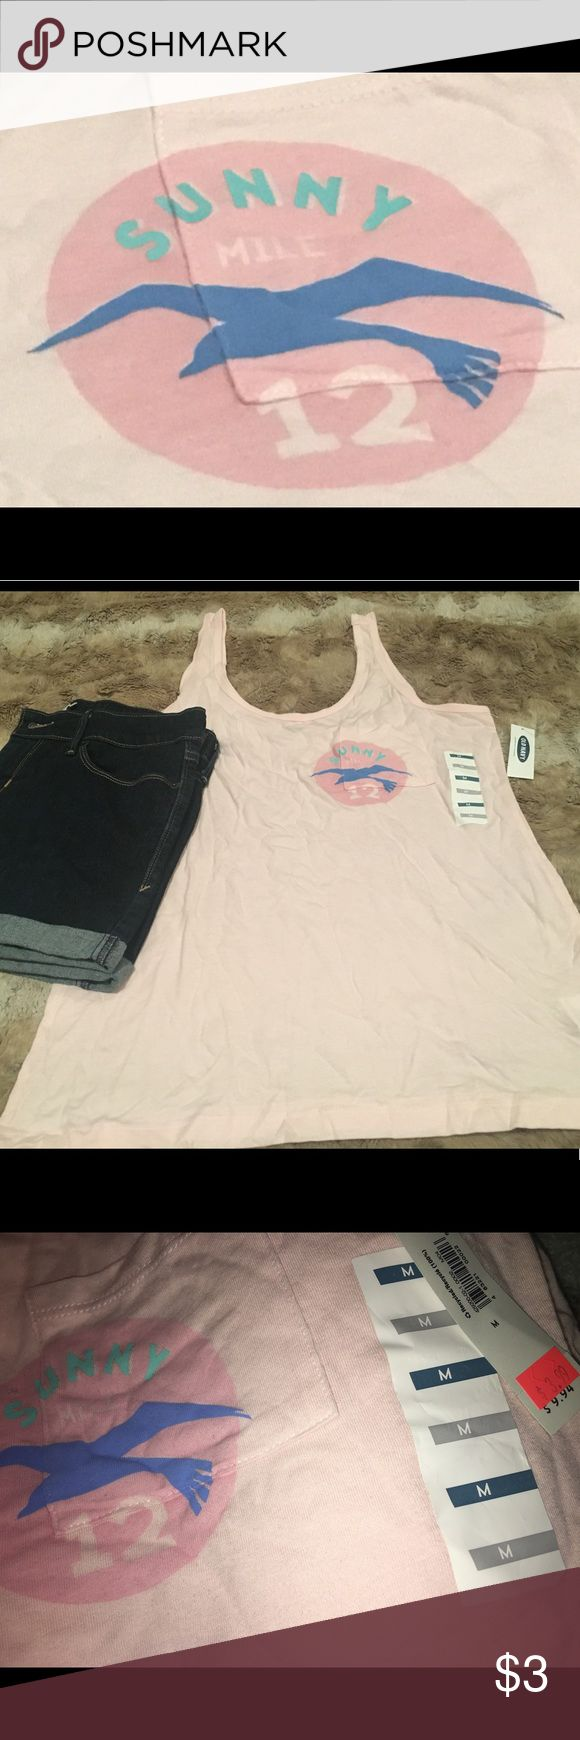 Old Navy Tank Top Old Navy, Tank Top, Light Pink - Thin Straps, US Size M, Brand New with Tags, 60% Cotton, 40% Modal Old Navy Tops Tank Tops